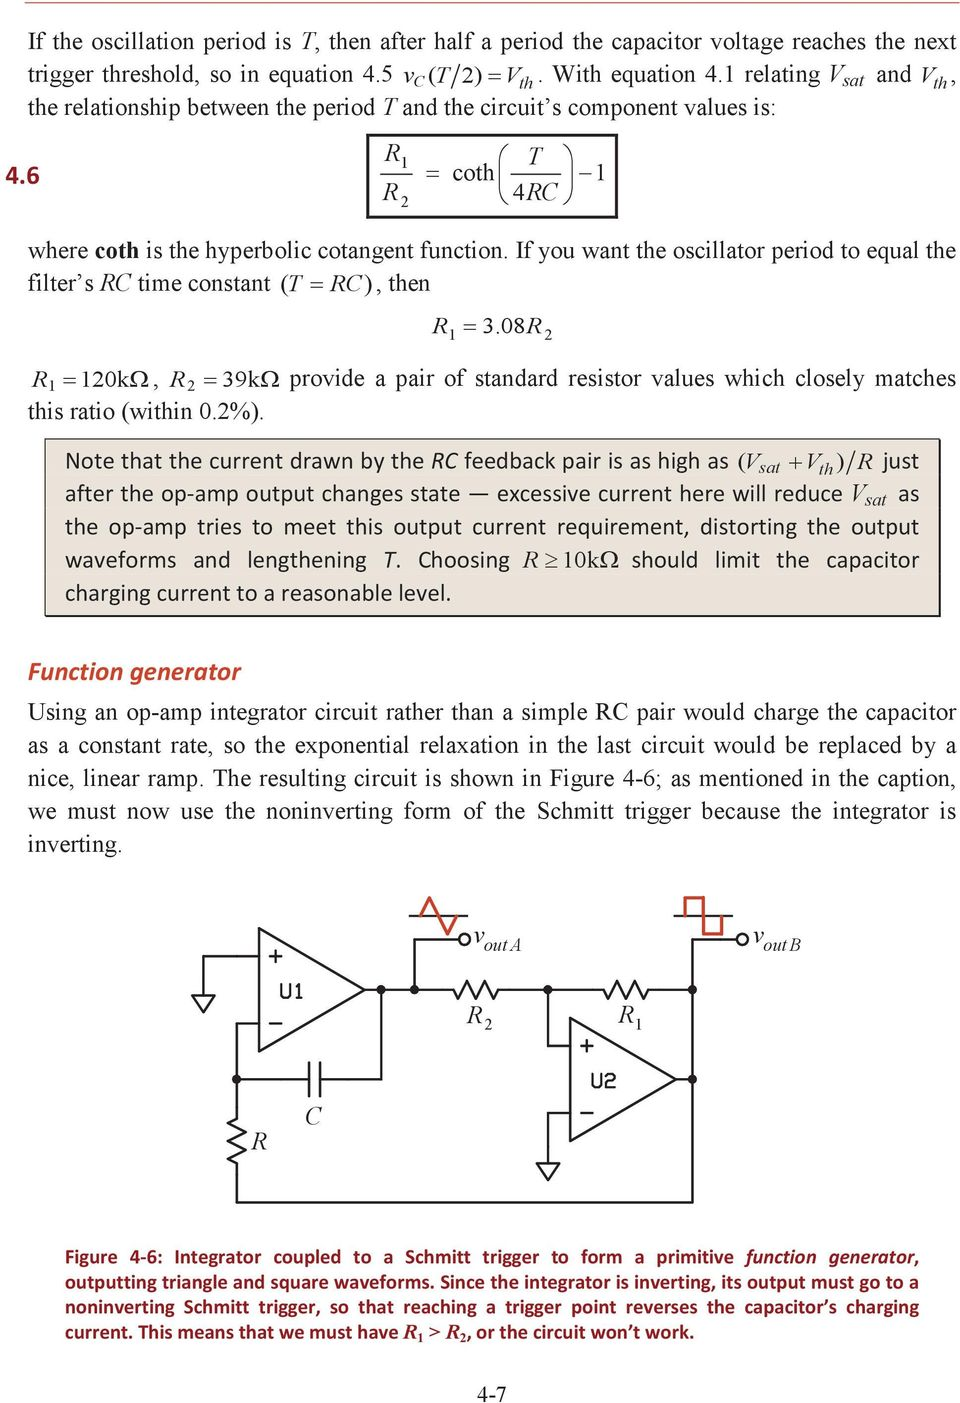 Comparators Positive Feedback And Relaxation Oscillators Pdf Voltagecontrolled Oscillator Circuit Signalprocessing If You Want The Period To Equal Filter S C Time Constant T